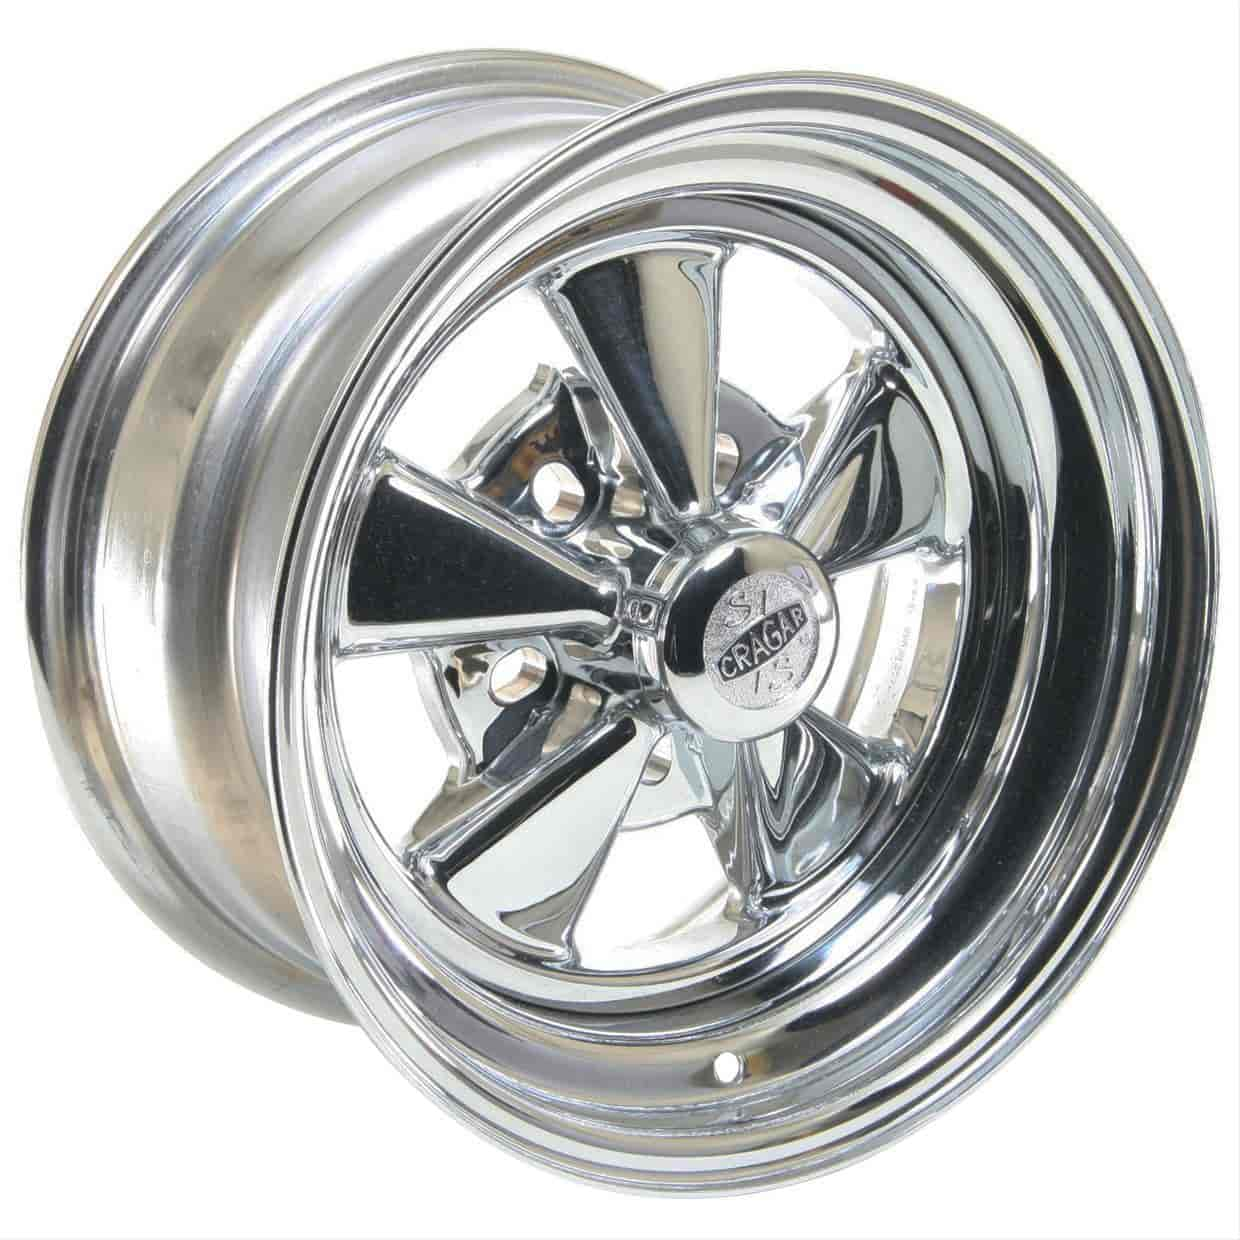 Cragar 61815 - Cragar 08/61 Series S/S Super Sport Wheels